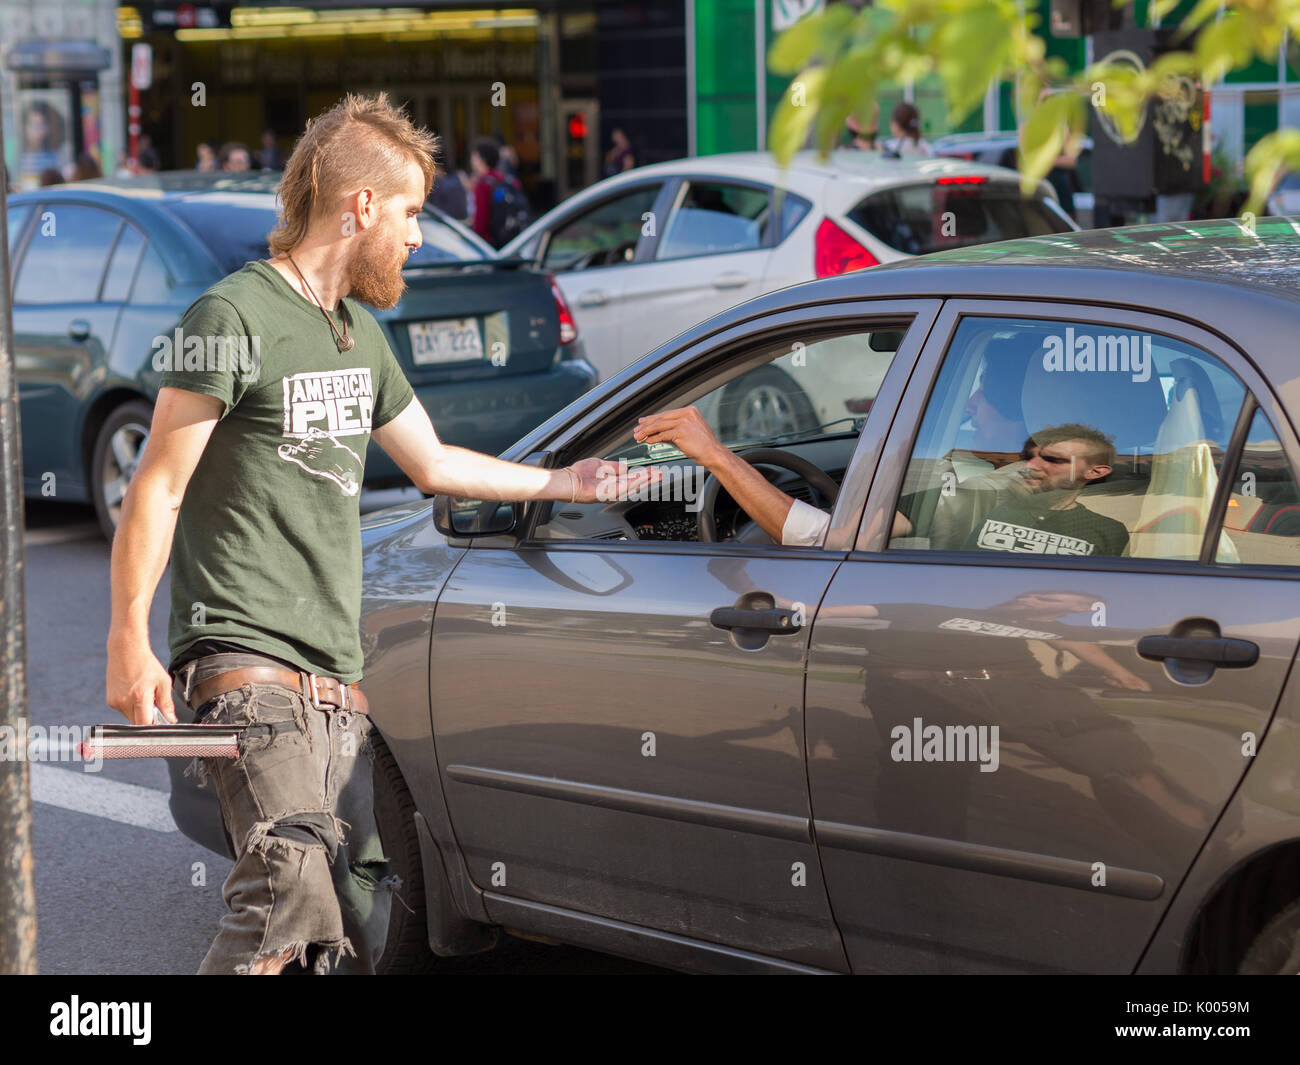 A man receives money from a driver as he finishes cleaning car windshield trying to earn some money for food & shelter. Poverty in Montreal, Quebec - Stock Image